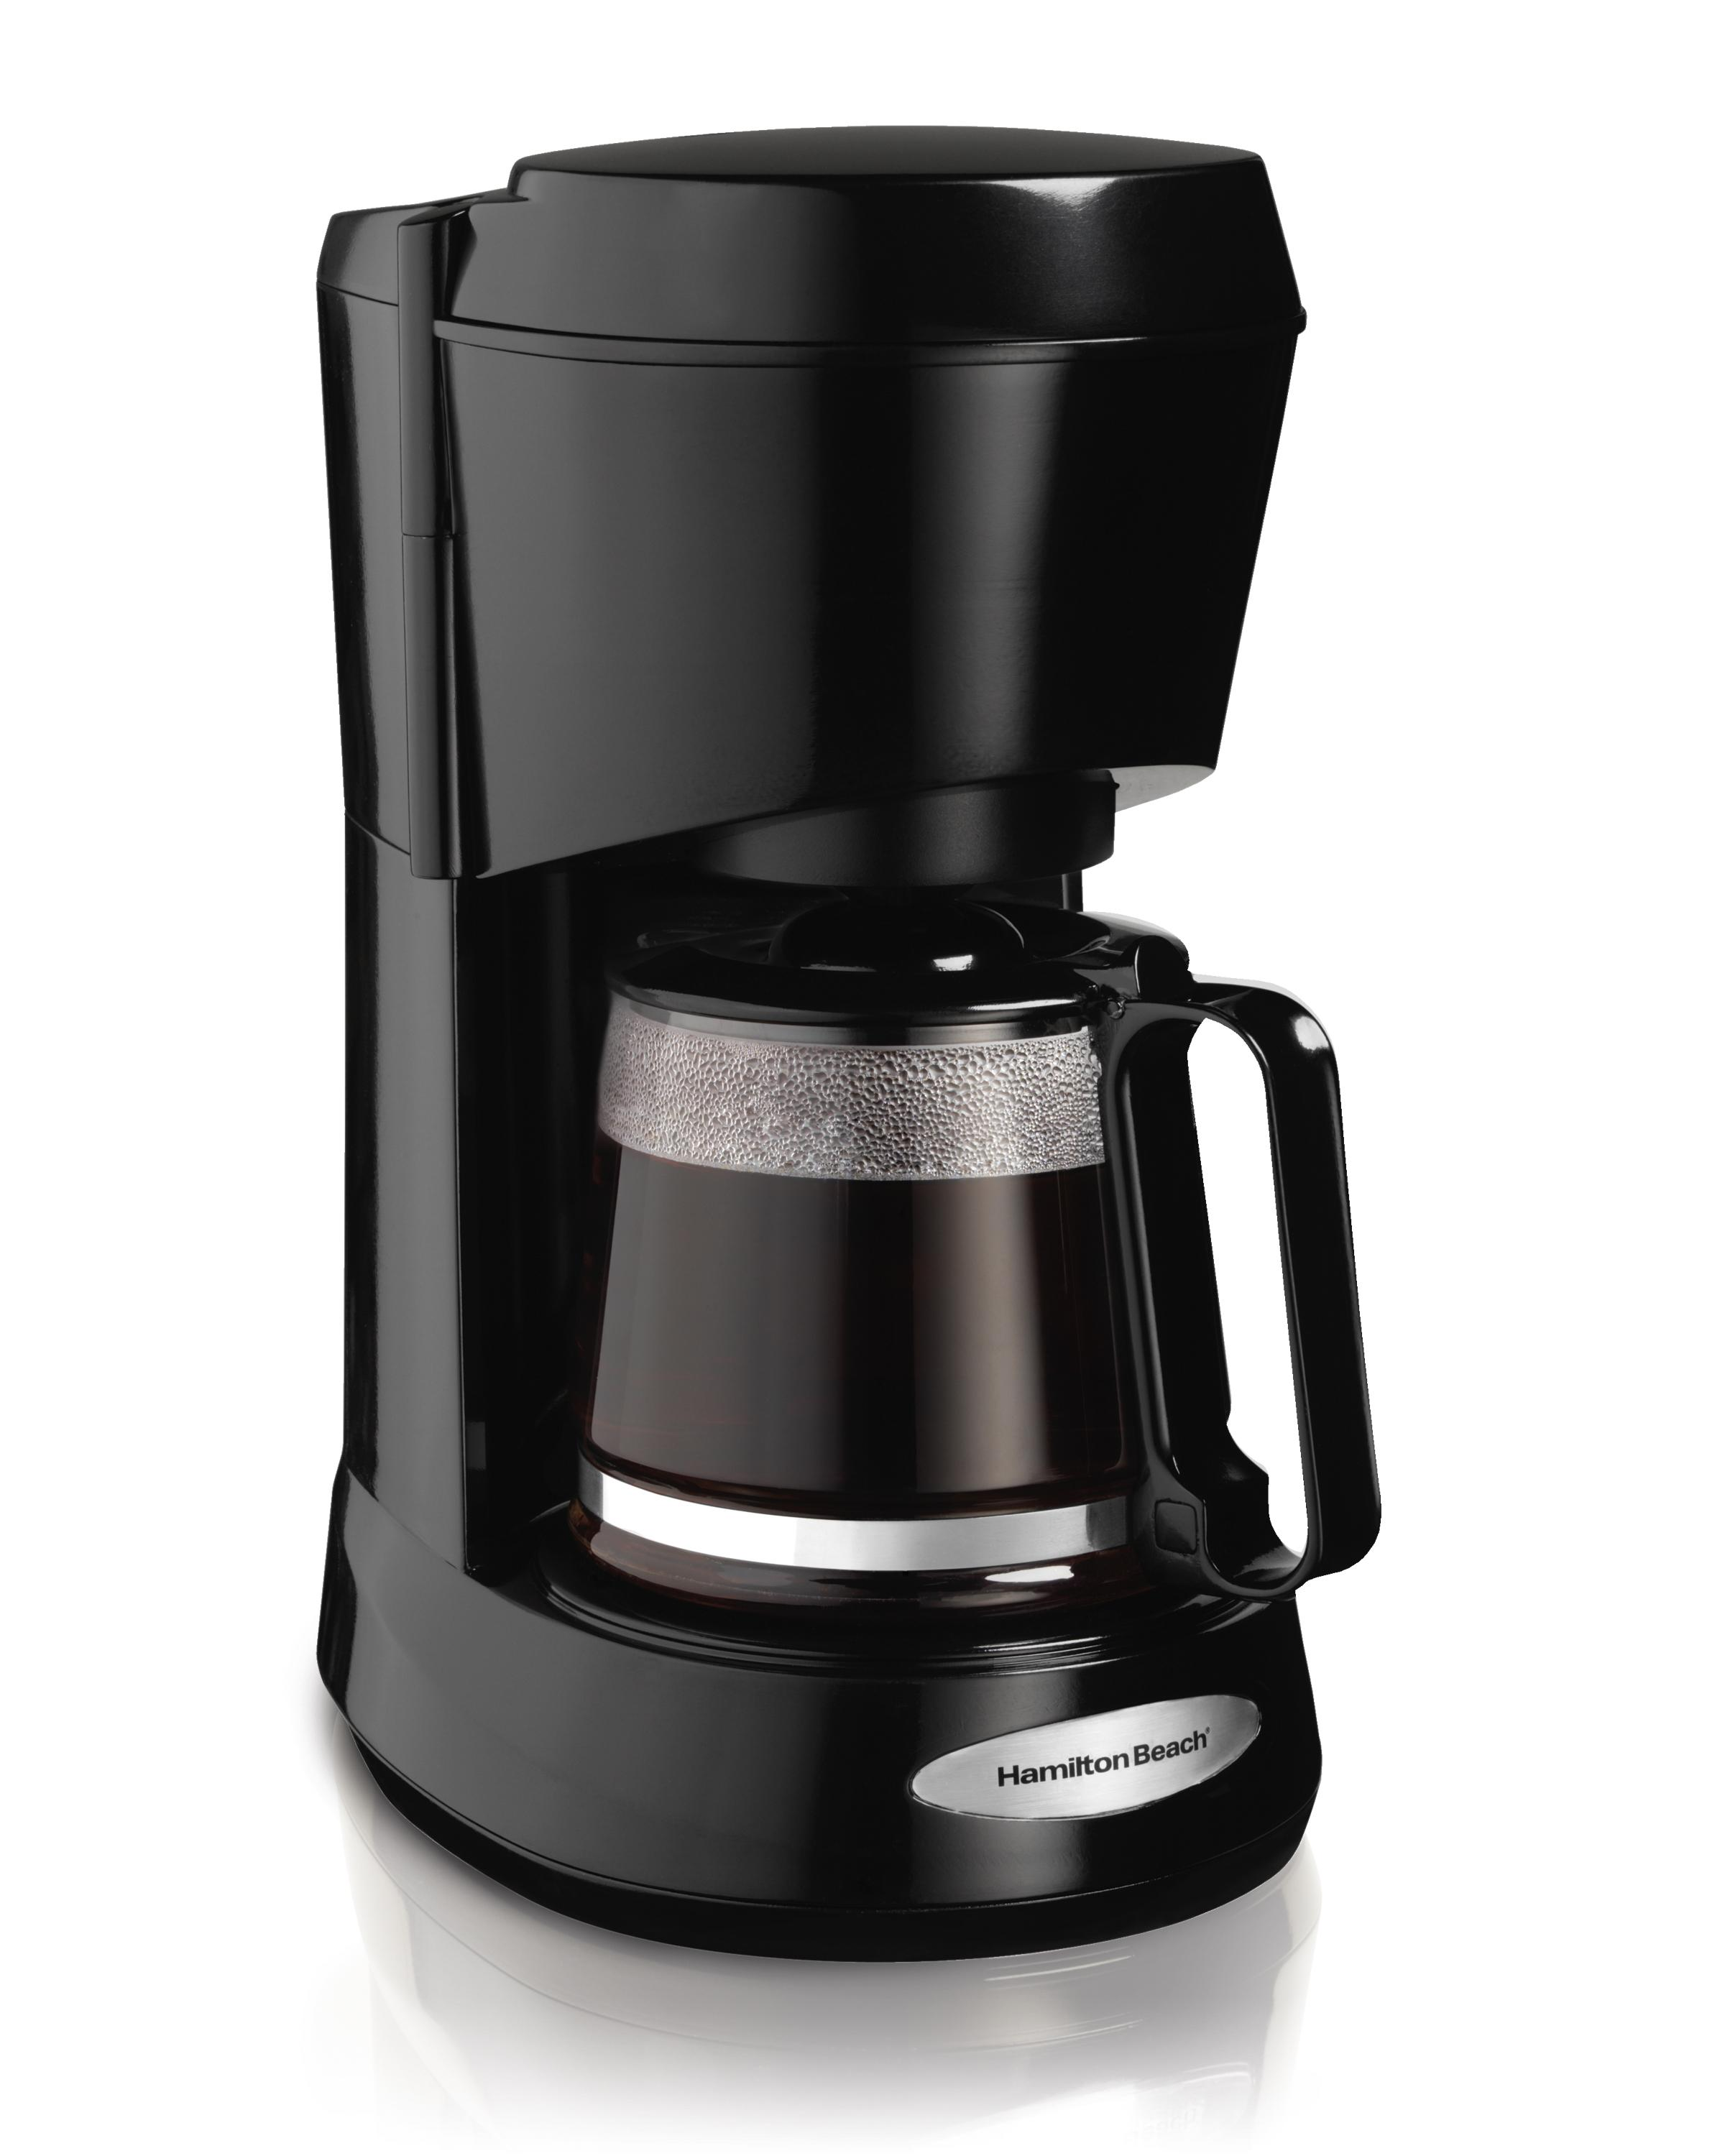 Braun Coffee Maker With Water Filter